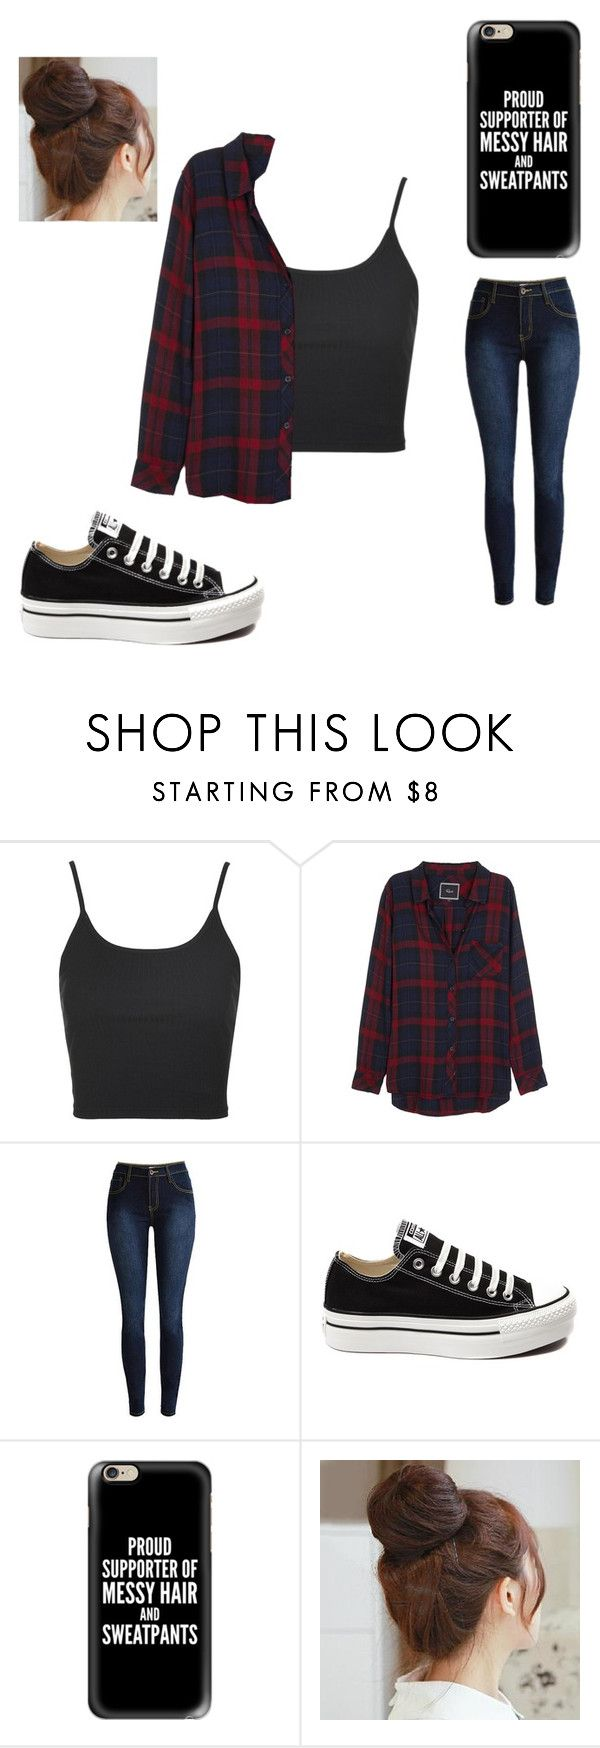 """""""Me everyday"""" by noelleandemma ❤ liked on Polyvore featuring Topshop, Rails, Converse, Casetify and Pin Show"""